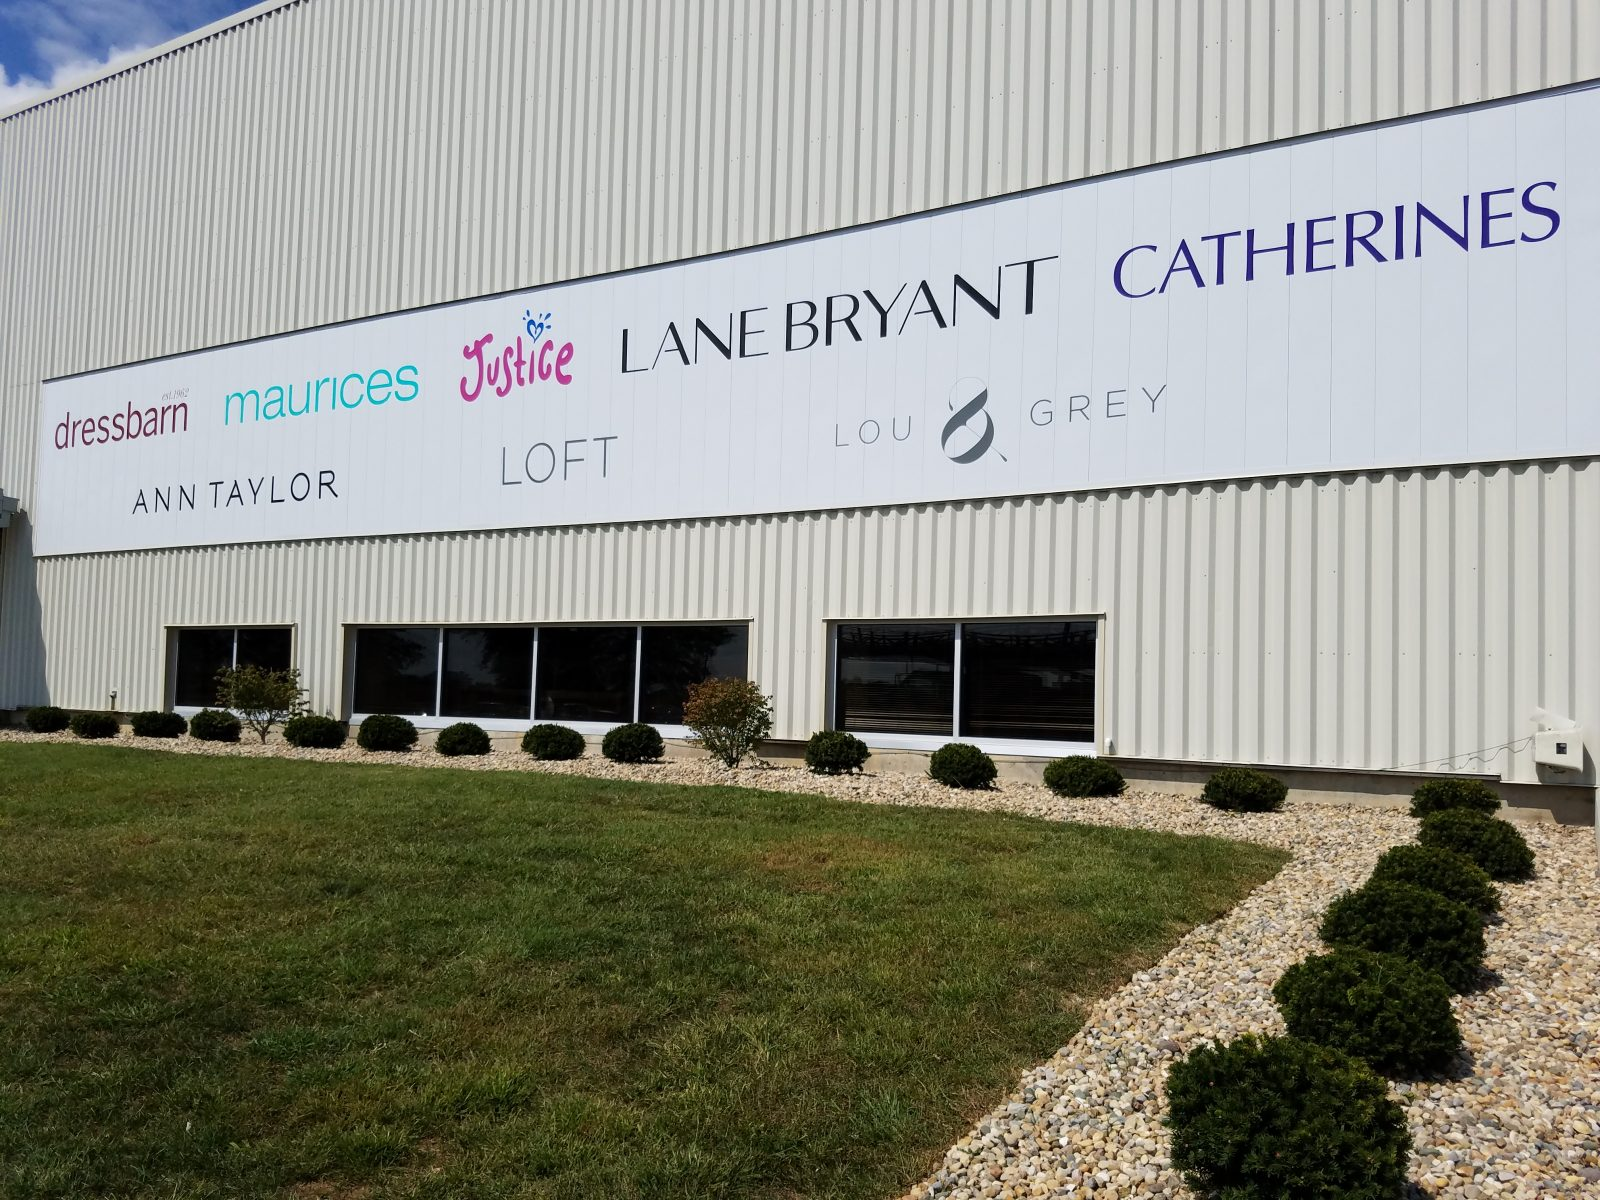 Custom Company Vinyl Banners & Signs in Indianapolis, IN